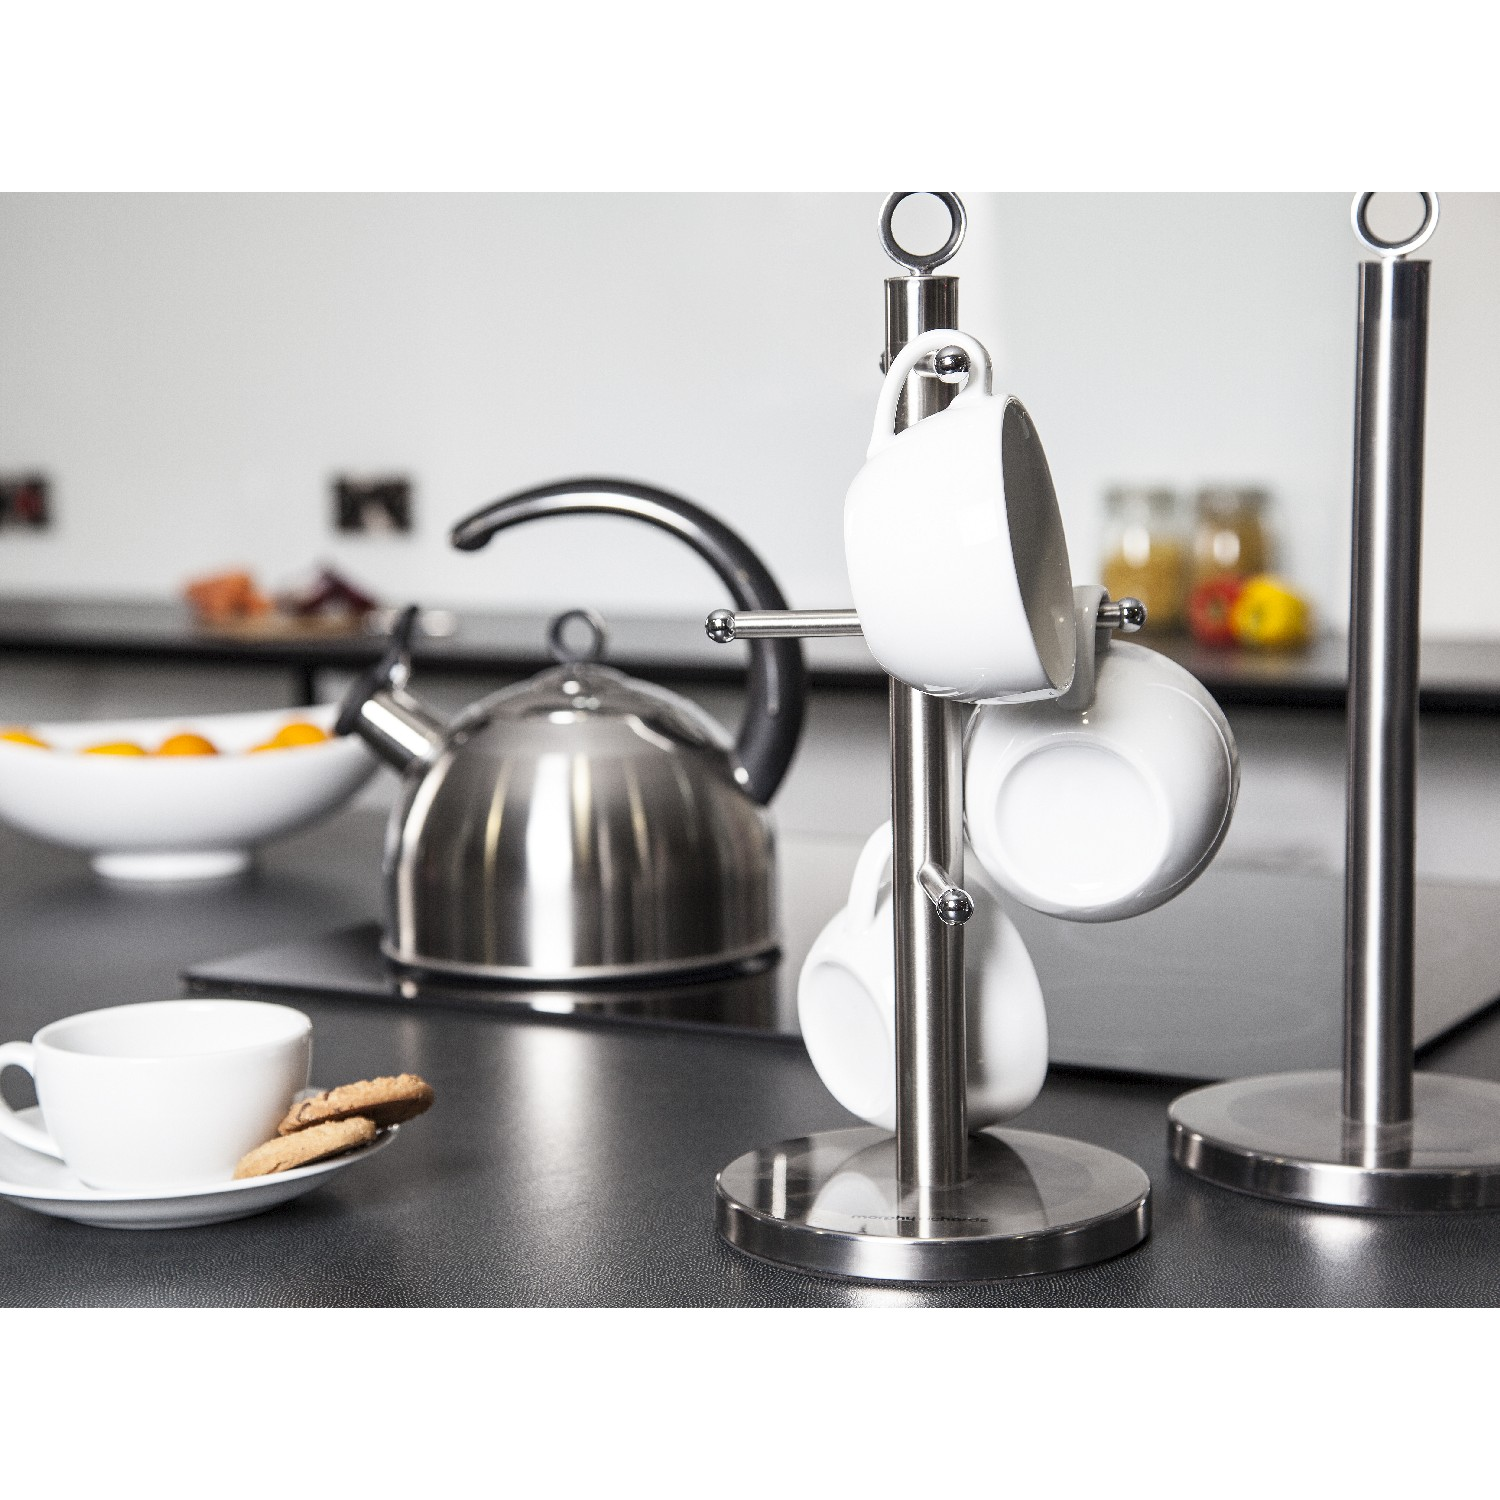 Morphy Richards Towel Pole: MORPHY RICAHRDS PAPER ROLL TOWEL POLE HOLDER KITCHEN STAND